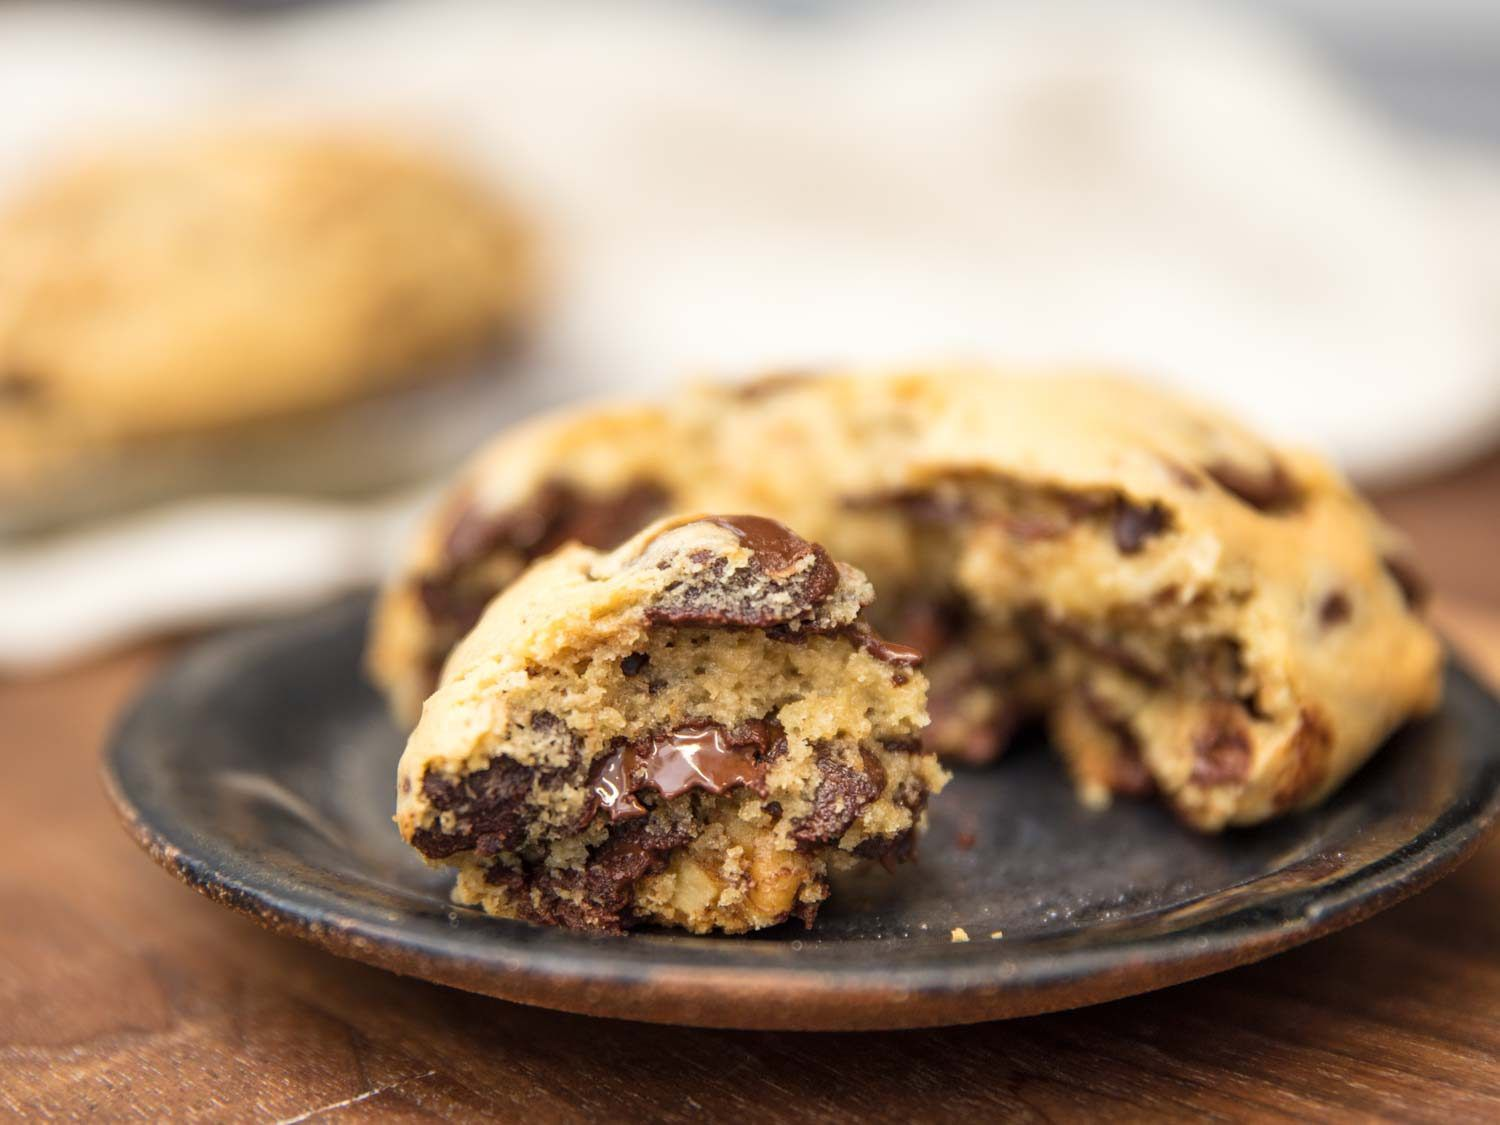 Levain Bakery-style super thick chocolate chip cookie on a plate.